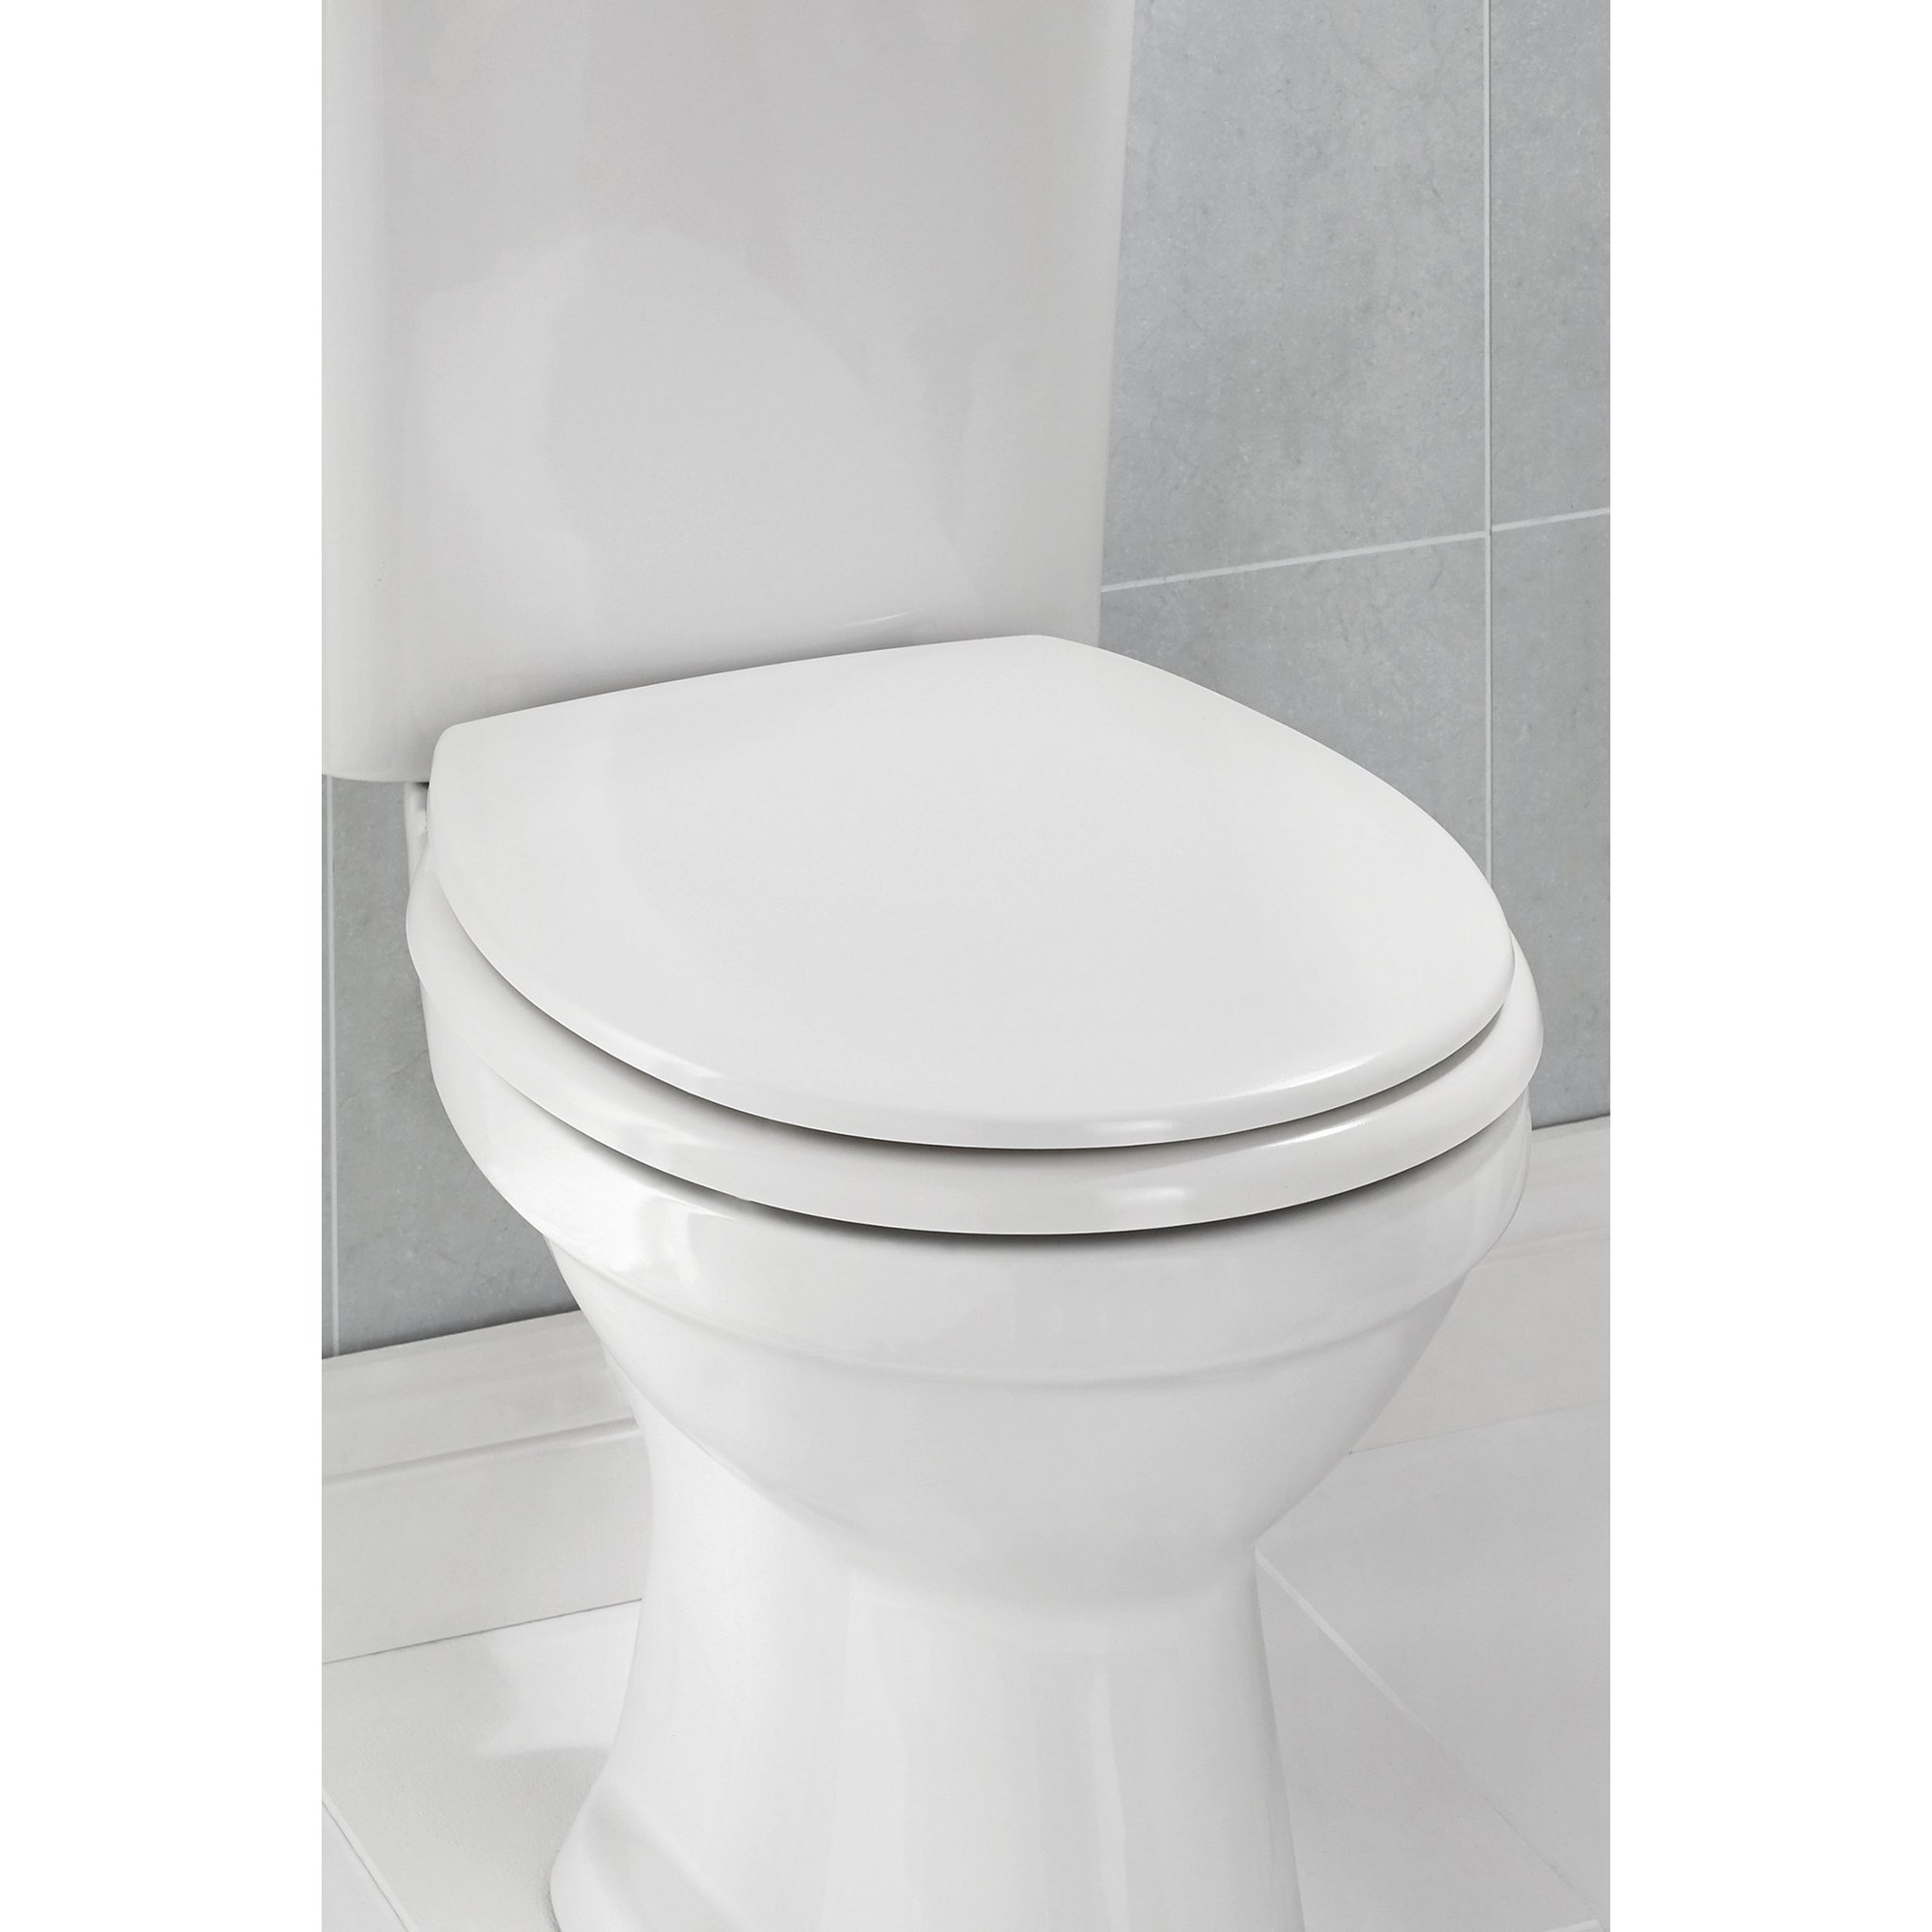 Image of Beldray Soft Close White Toilet Seat